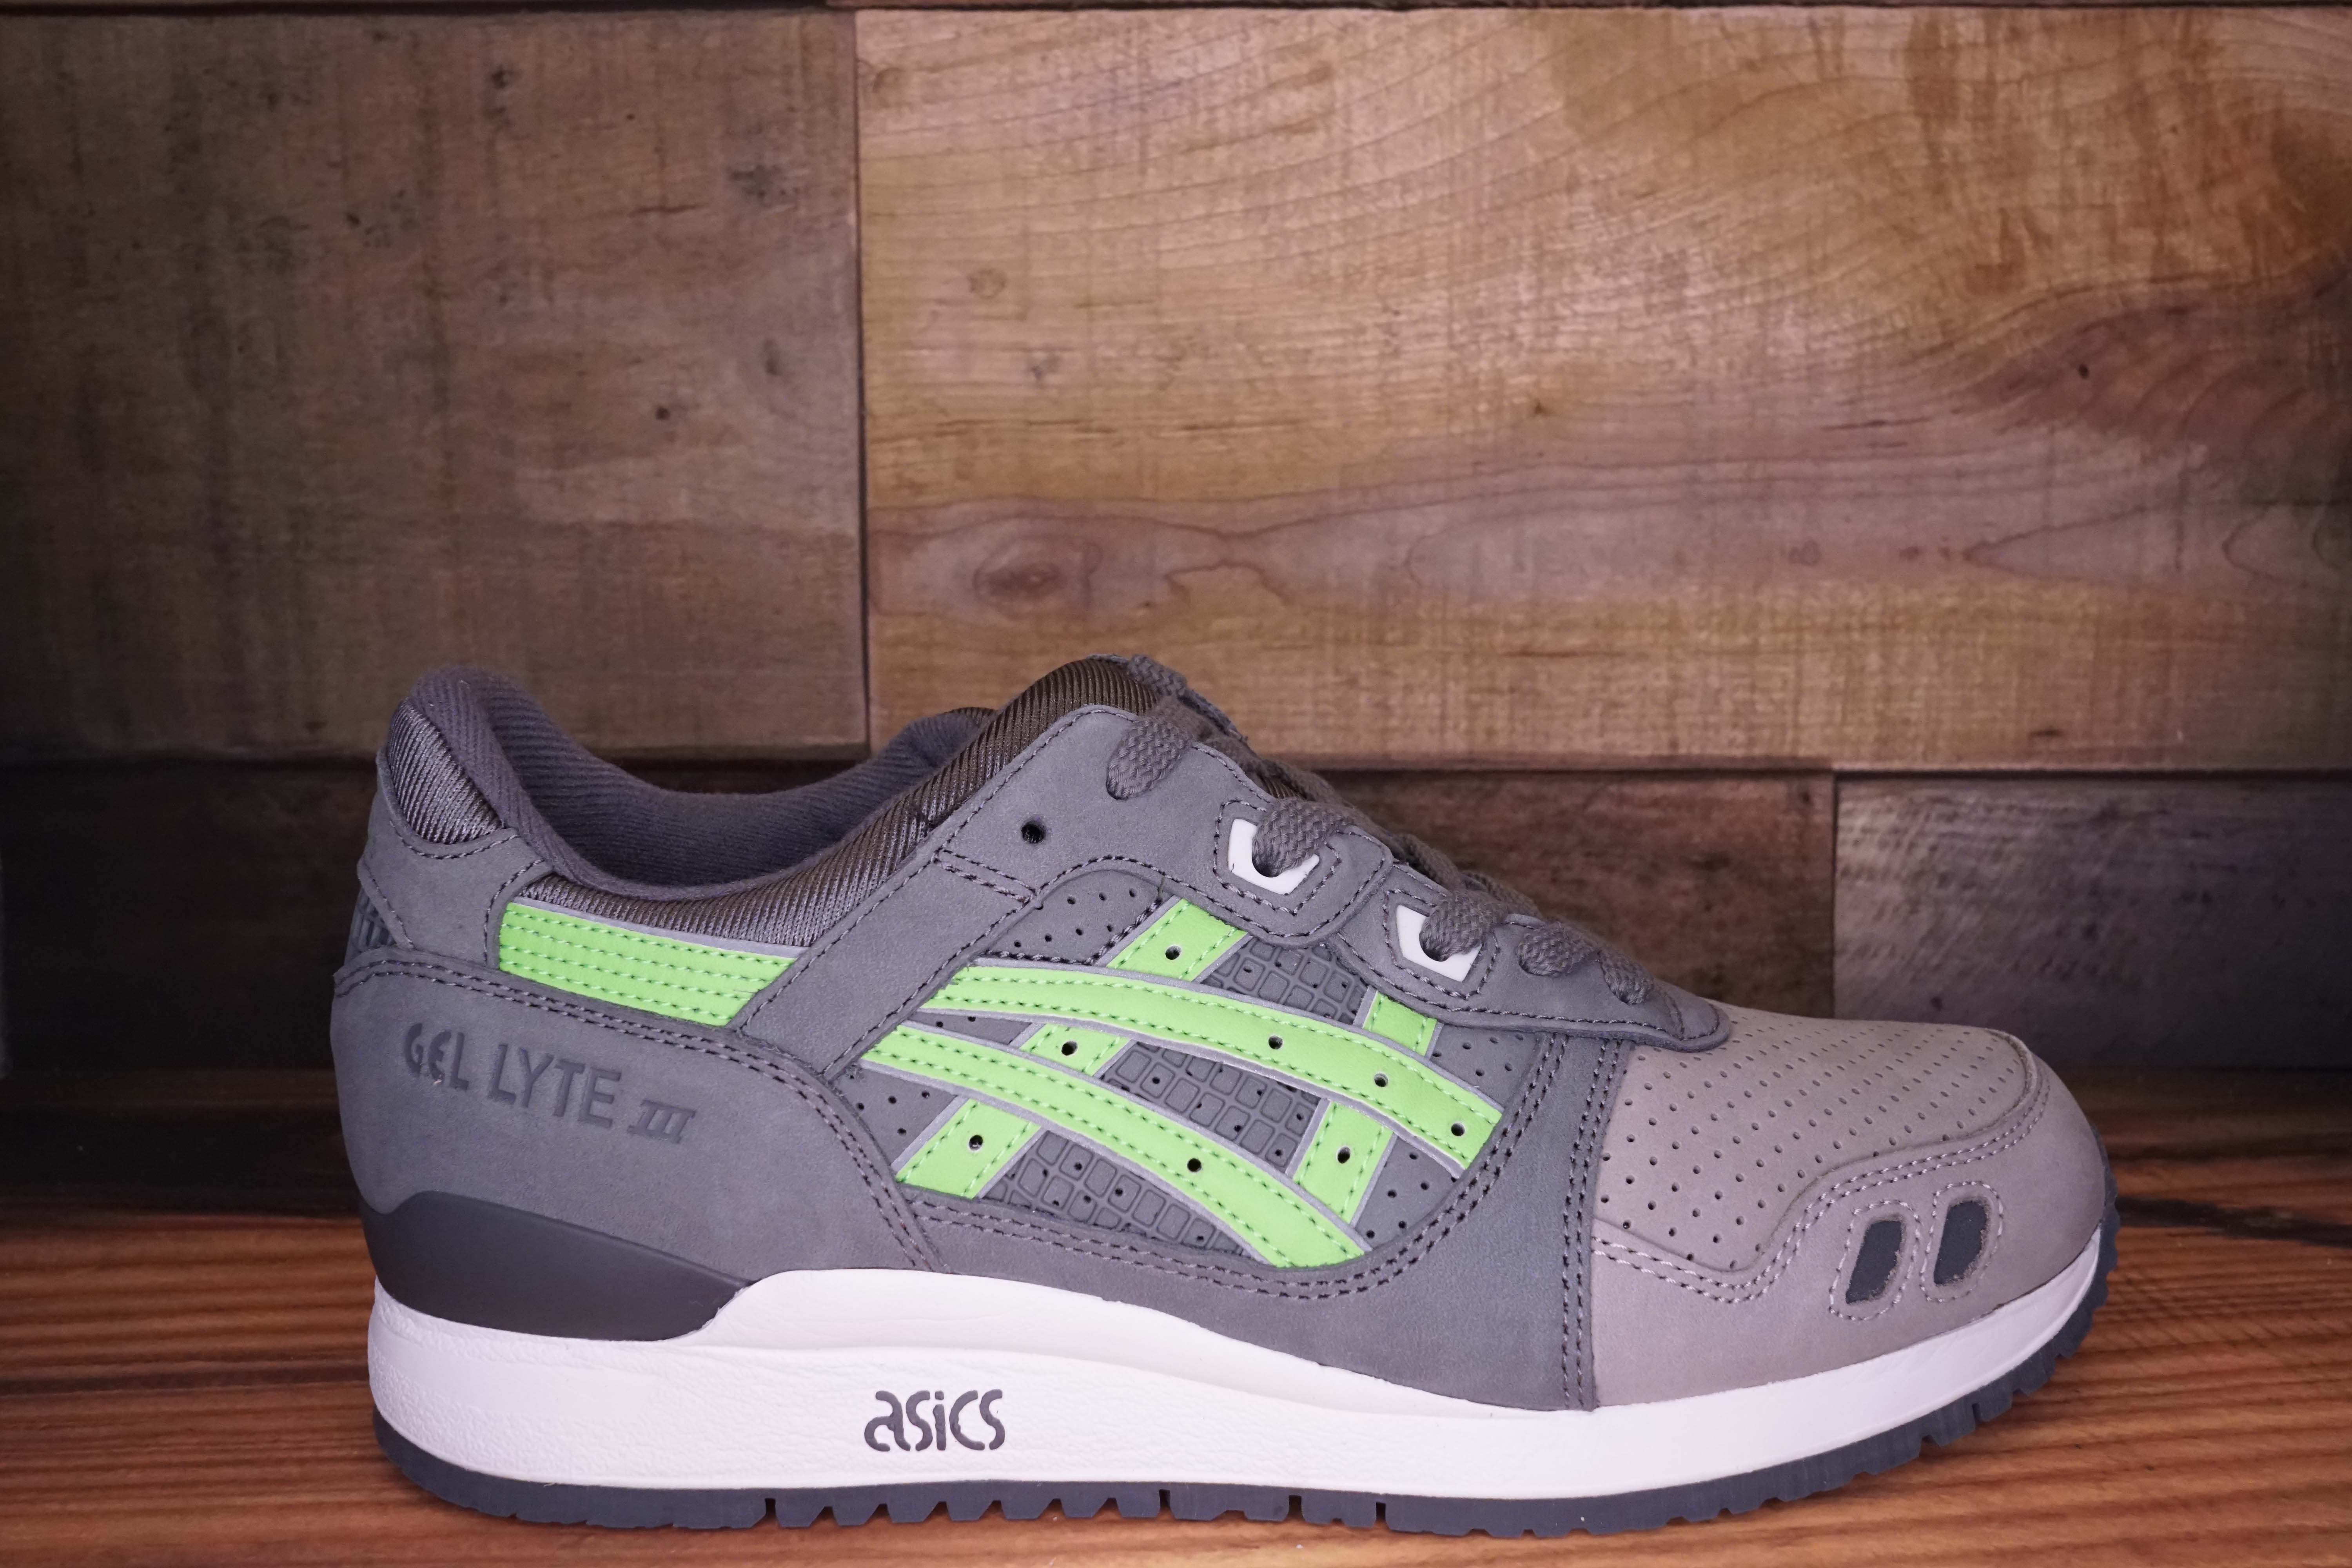 Asics-Gel-Lyte-3-SUPER-GREEN-2016-Size-10.5-New-with-Original-Box_2510A.jpg